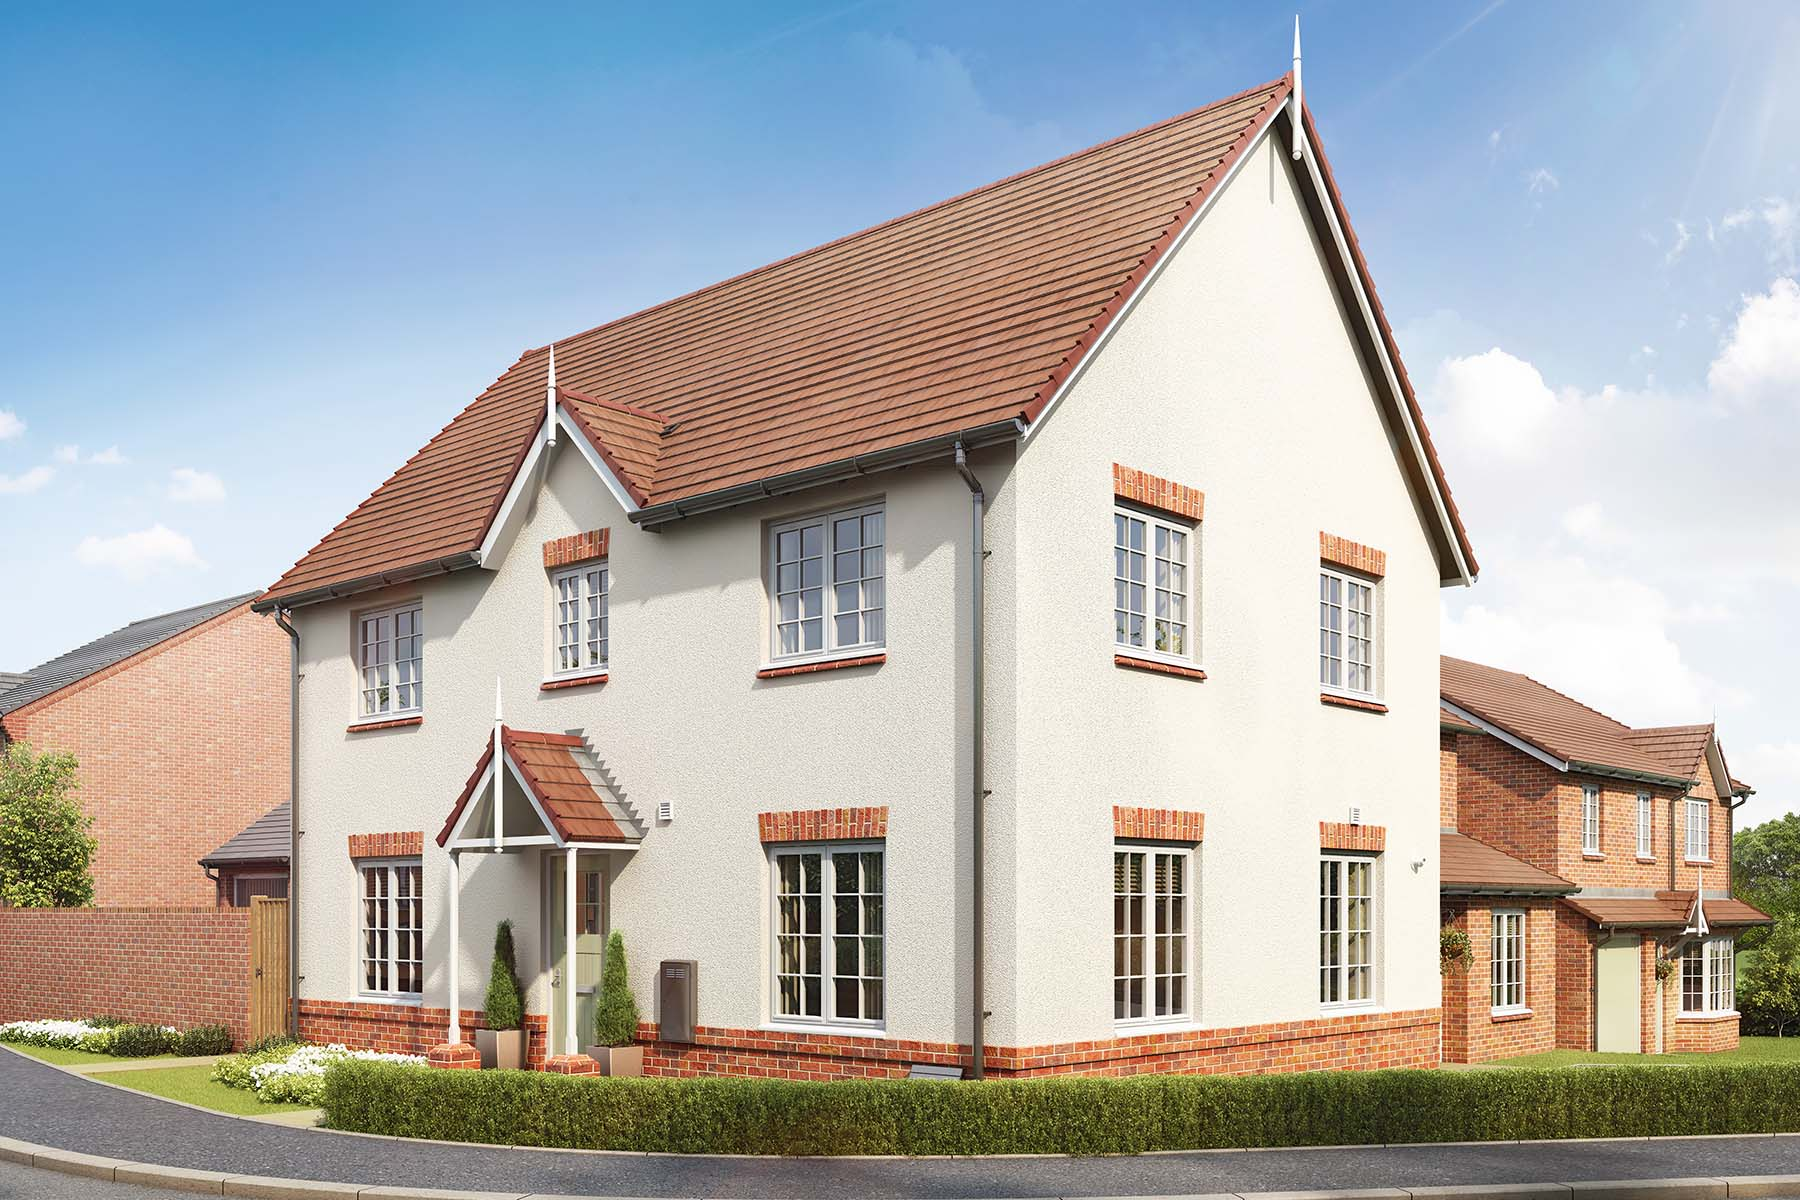 CGI-Mulberry-Lane-Kentdale-TT42-R2-Plot-29